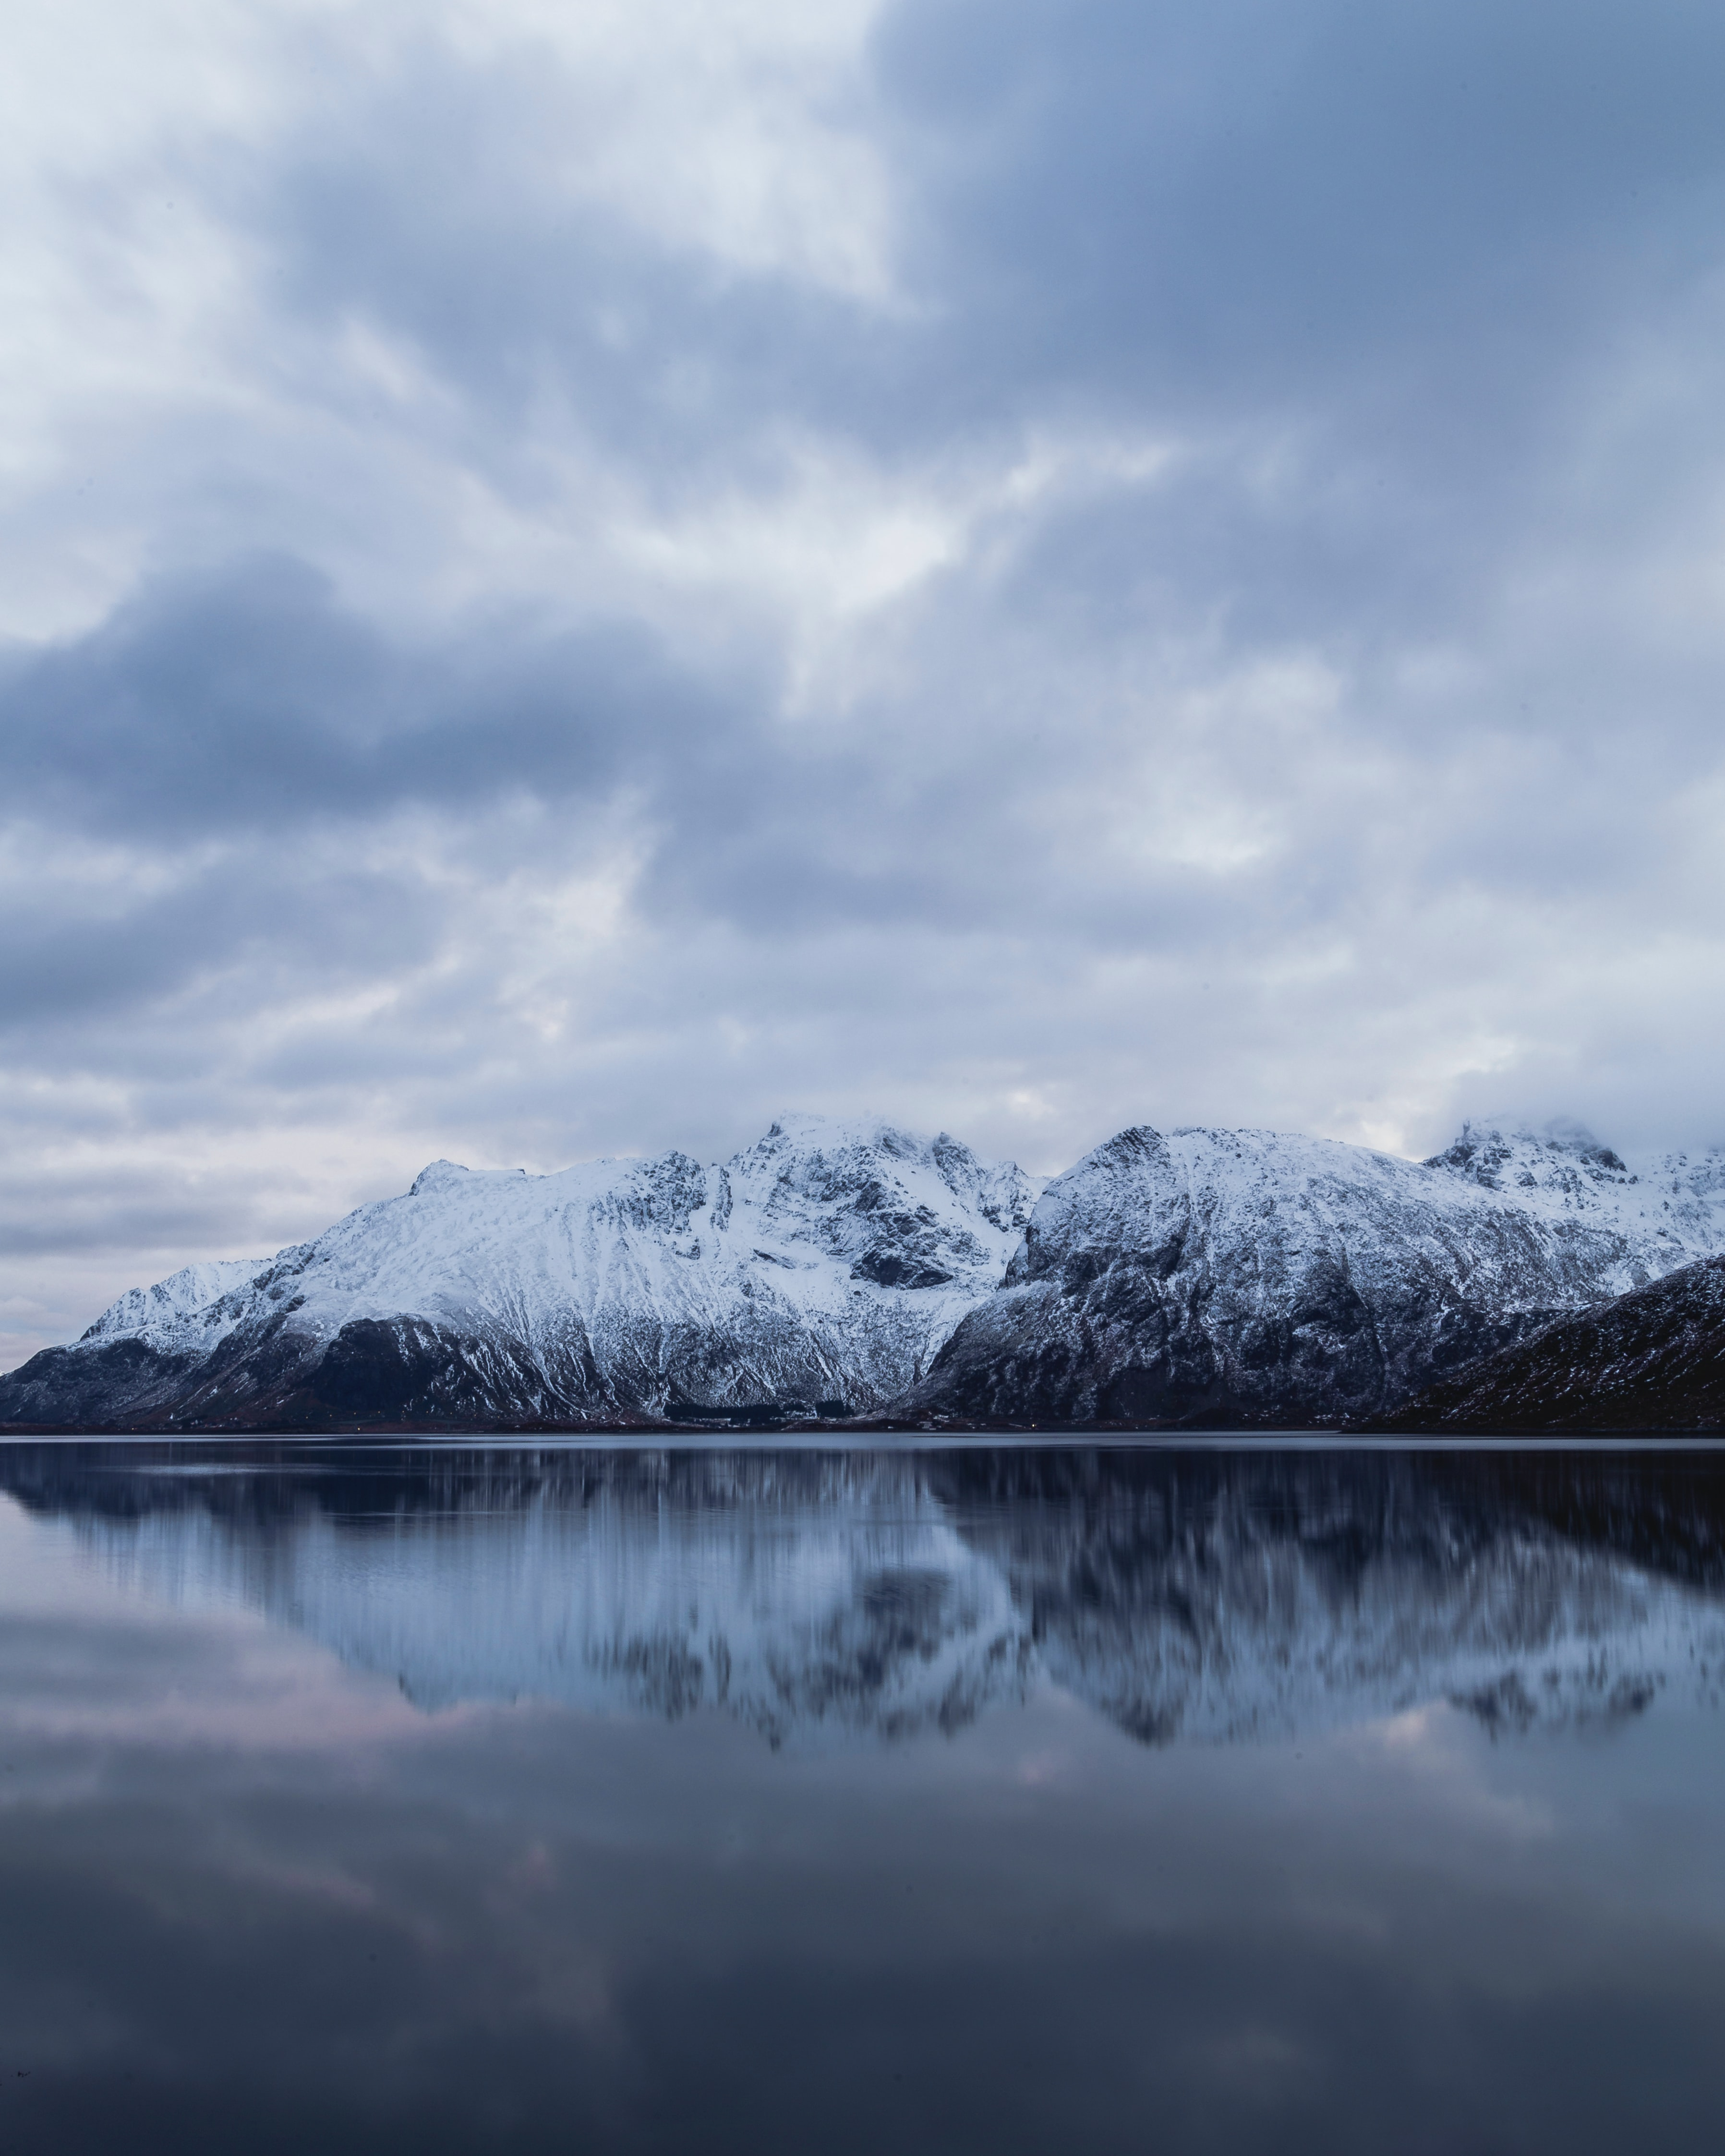 94455 download wallpaper Nature, Rocks, Snow, Snow Covered, Snowbound, Water, Reflection, Mountains screensavers and pictures for free